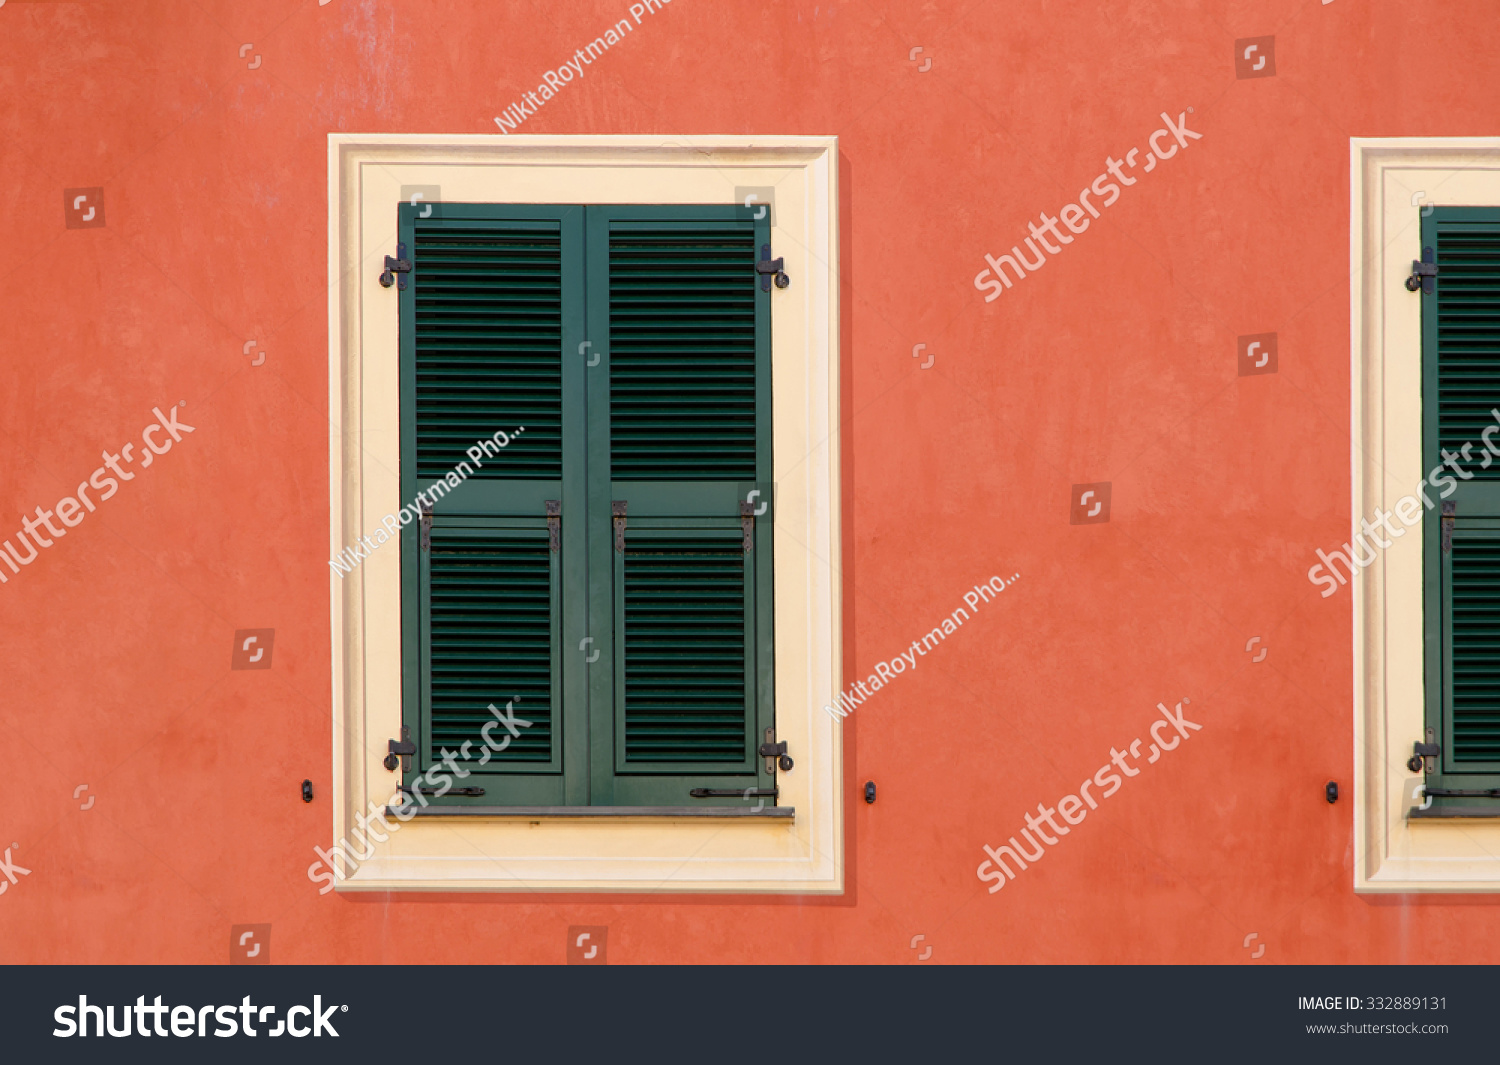 Wood Shutters Closed : Decorative wooden window shutters closed on the exterior